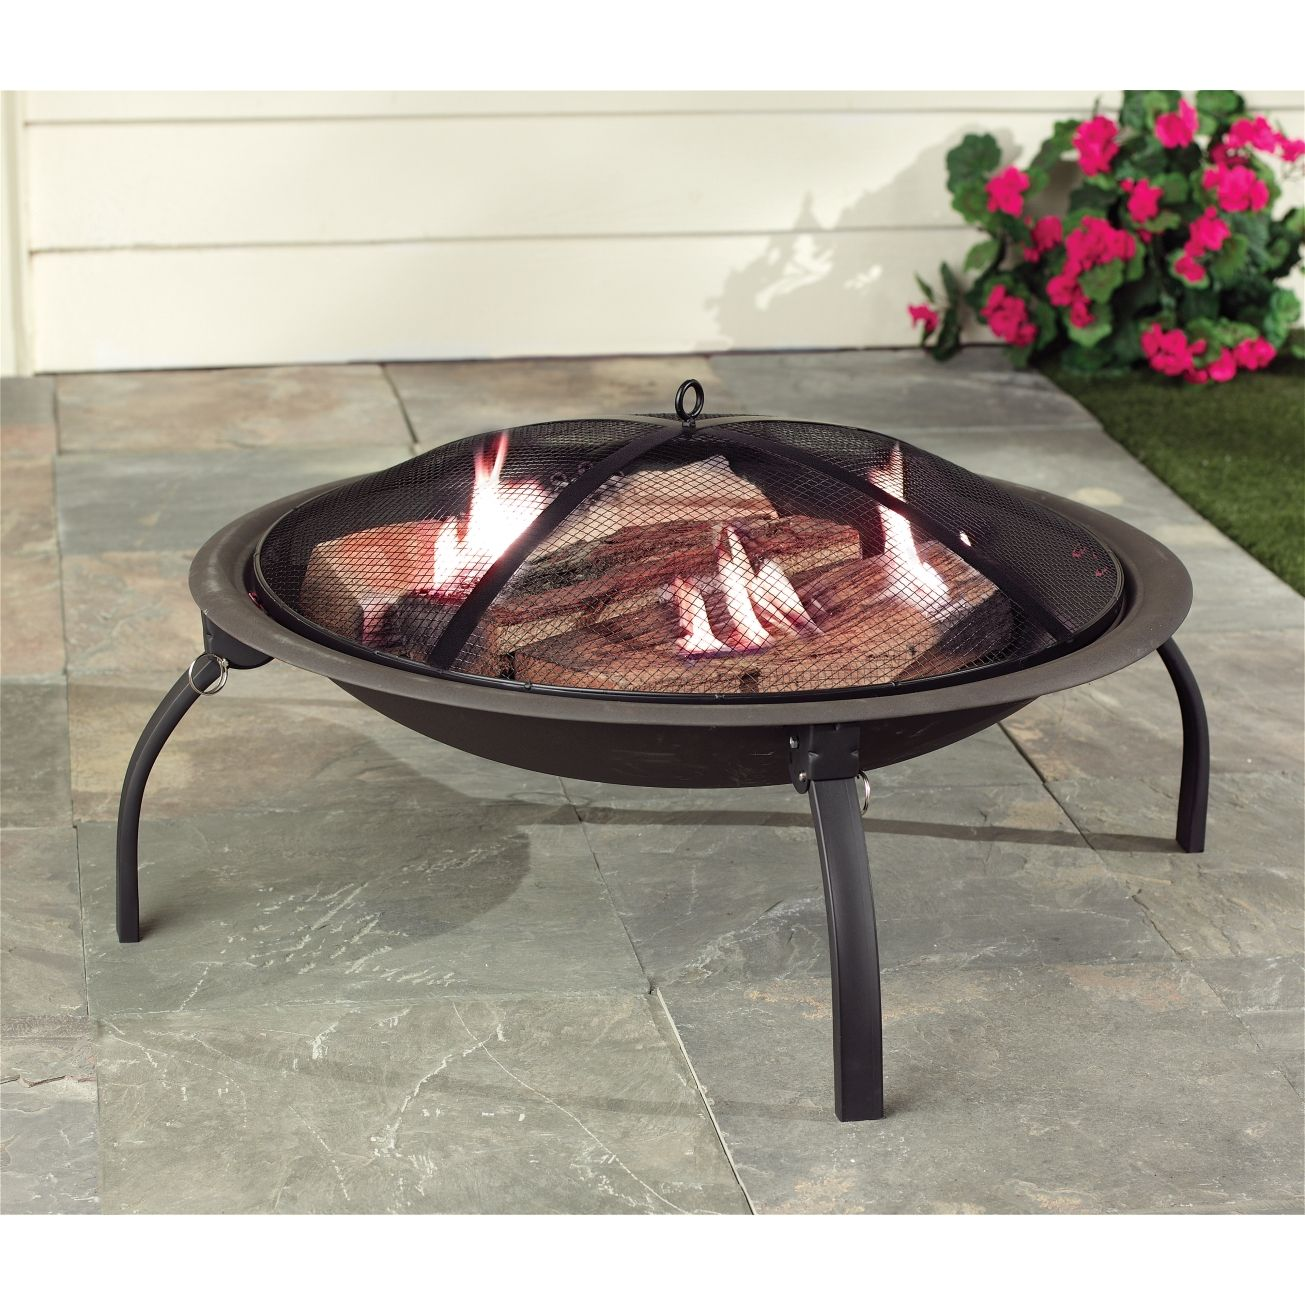 Living Accents® 28in Portable Firepit - Outdoor Fireplaces - Ace Hardware - Living Accents® 28in Portable Firepit - Outdoor Fireplaces - Ace